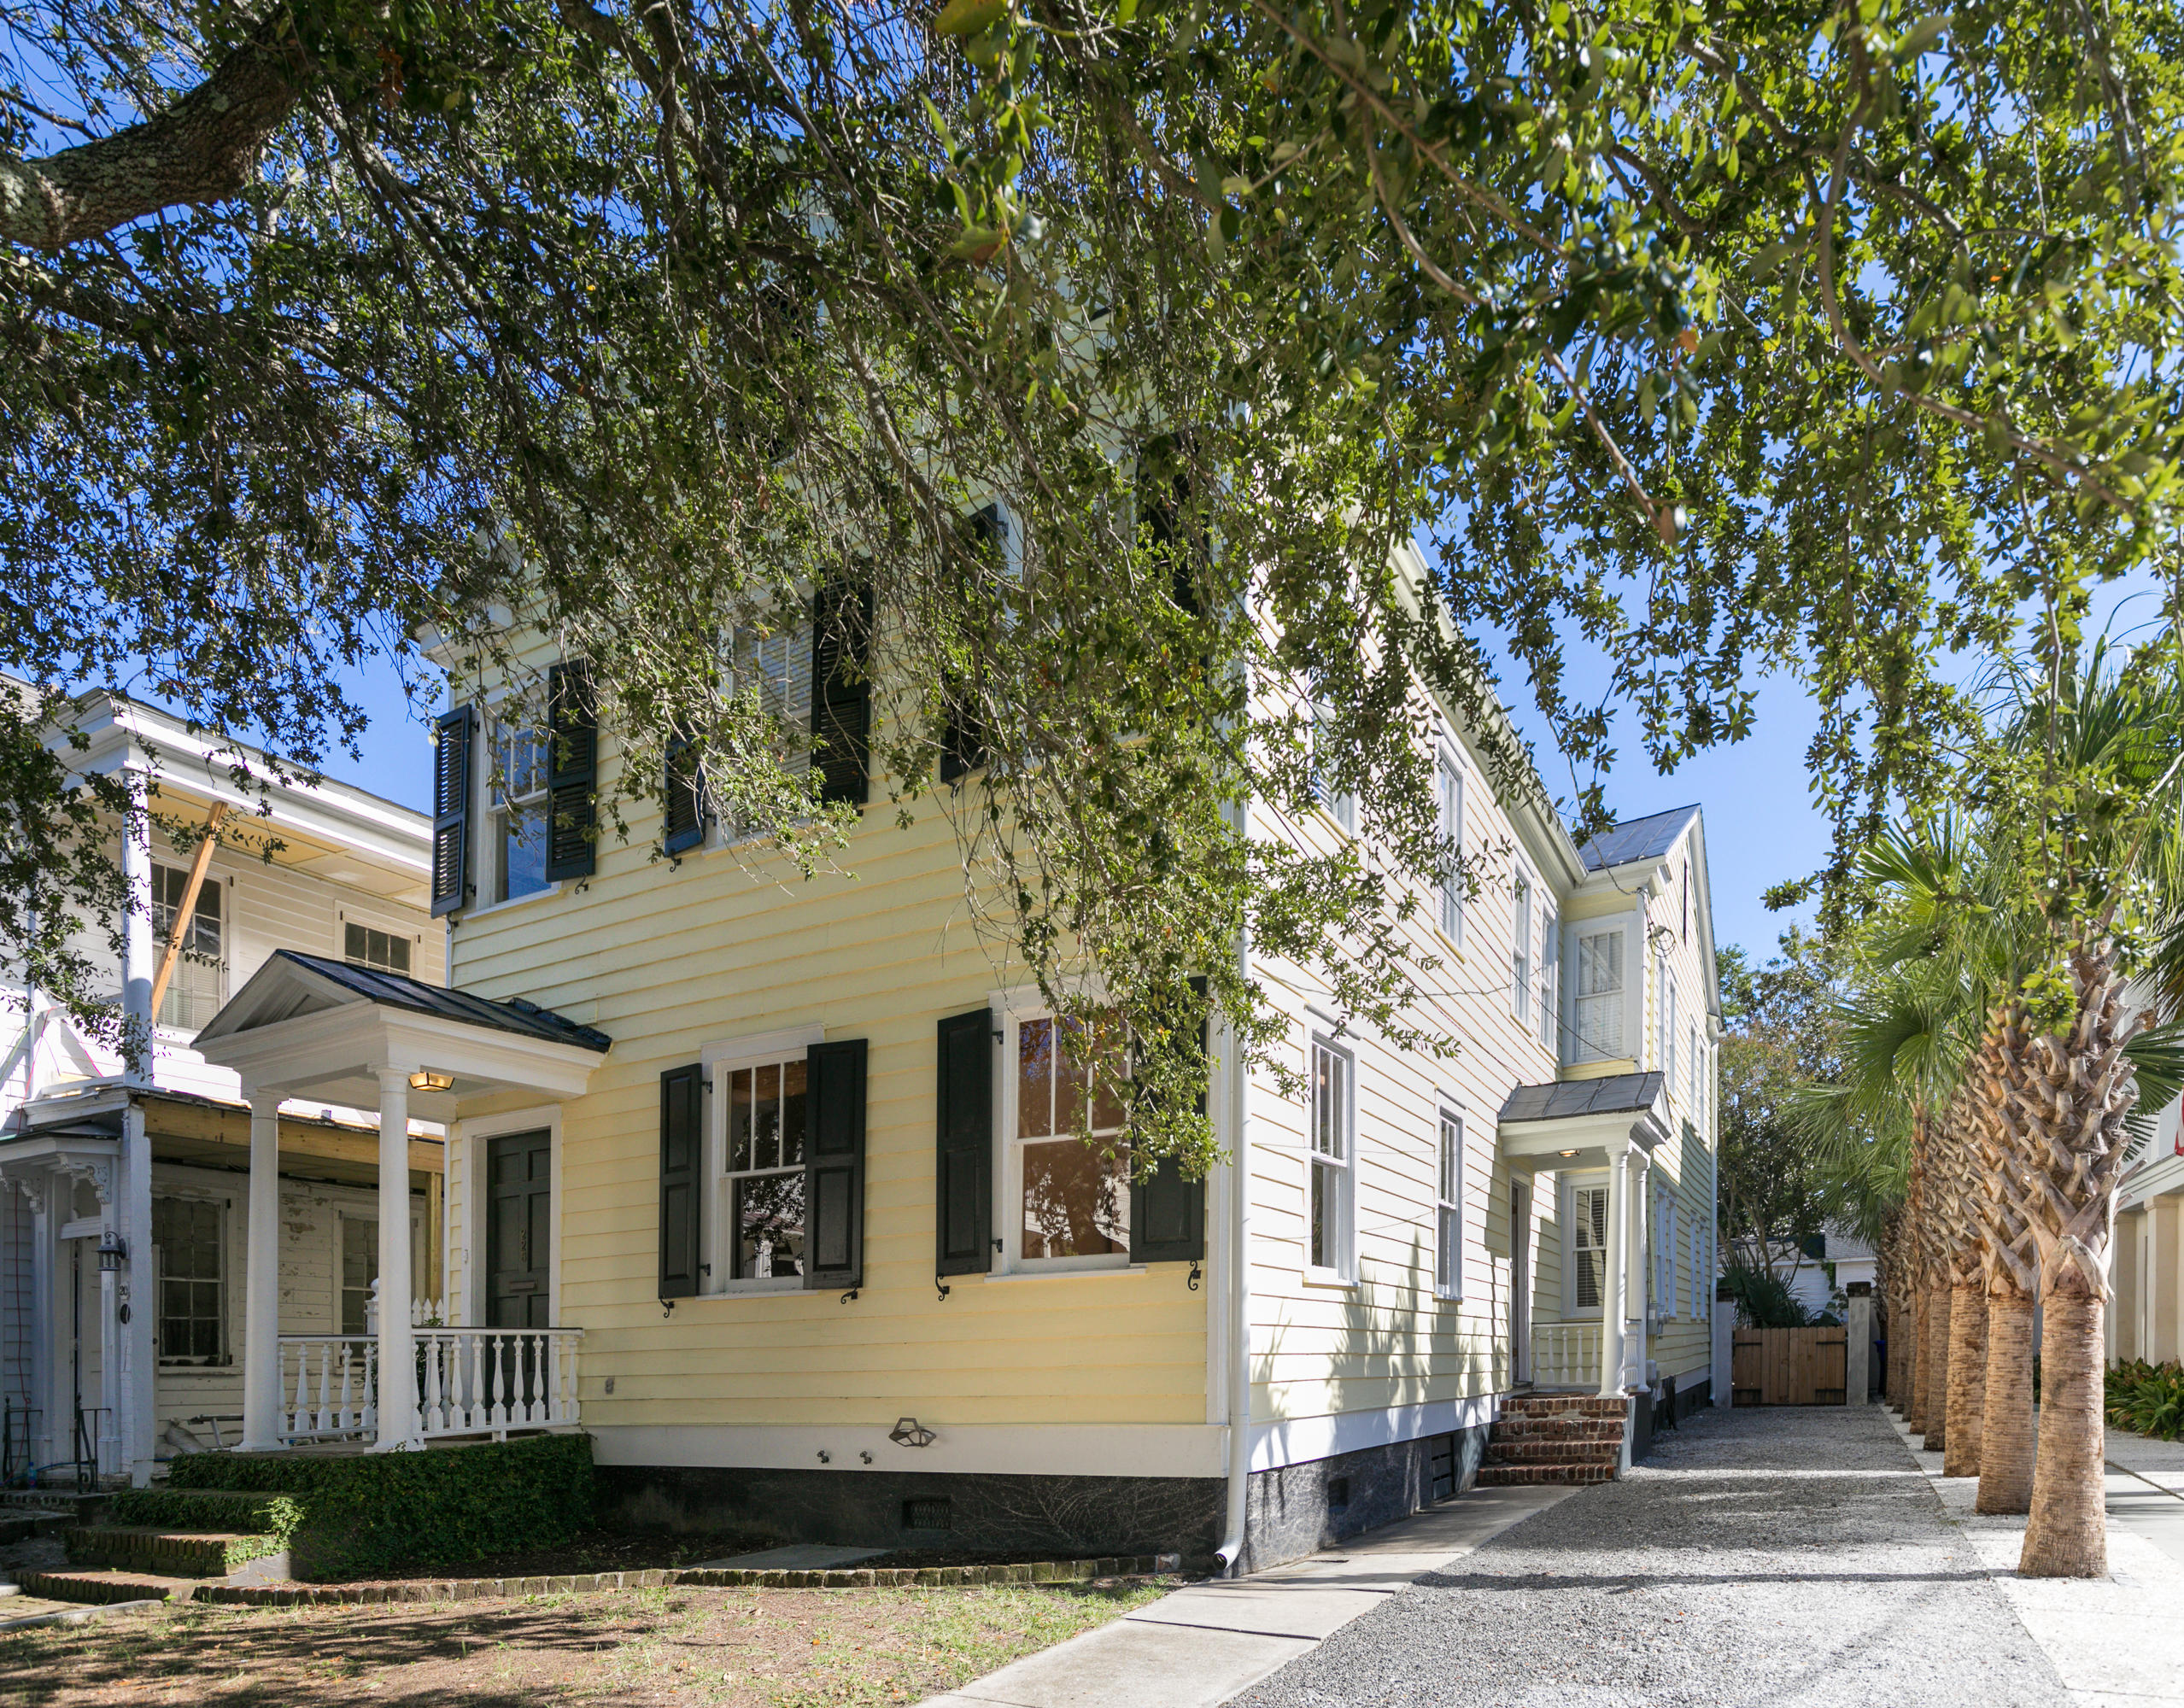 22 Council Street, Charleston, 29401, ,MultiFamily,For Sale,Council,21010268